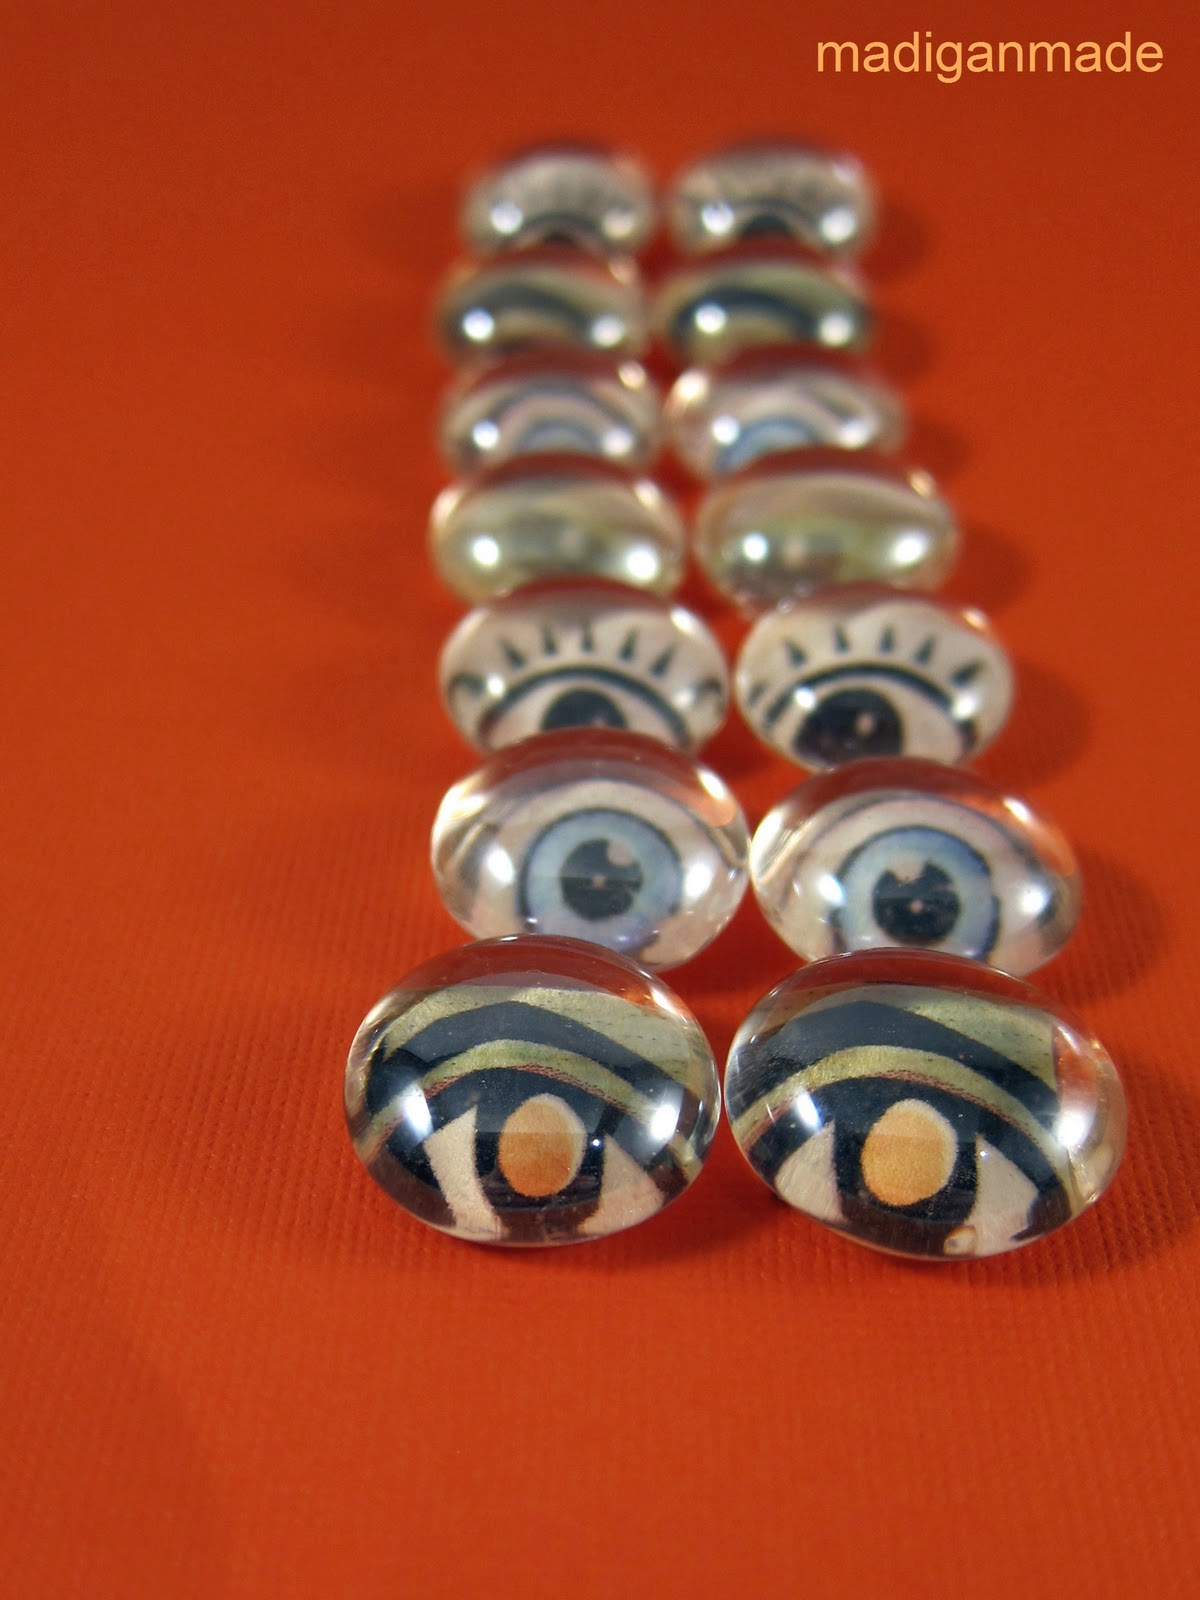 Flat glass marbles crafts - Flat Glass Marbles Crafts Simple And Easy Diy Glass Eyeballs Instructions At Madiganmade Com